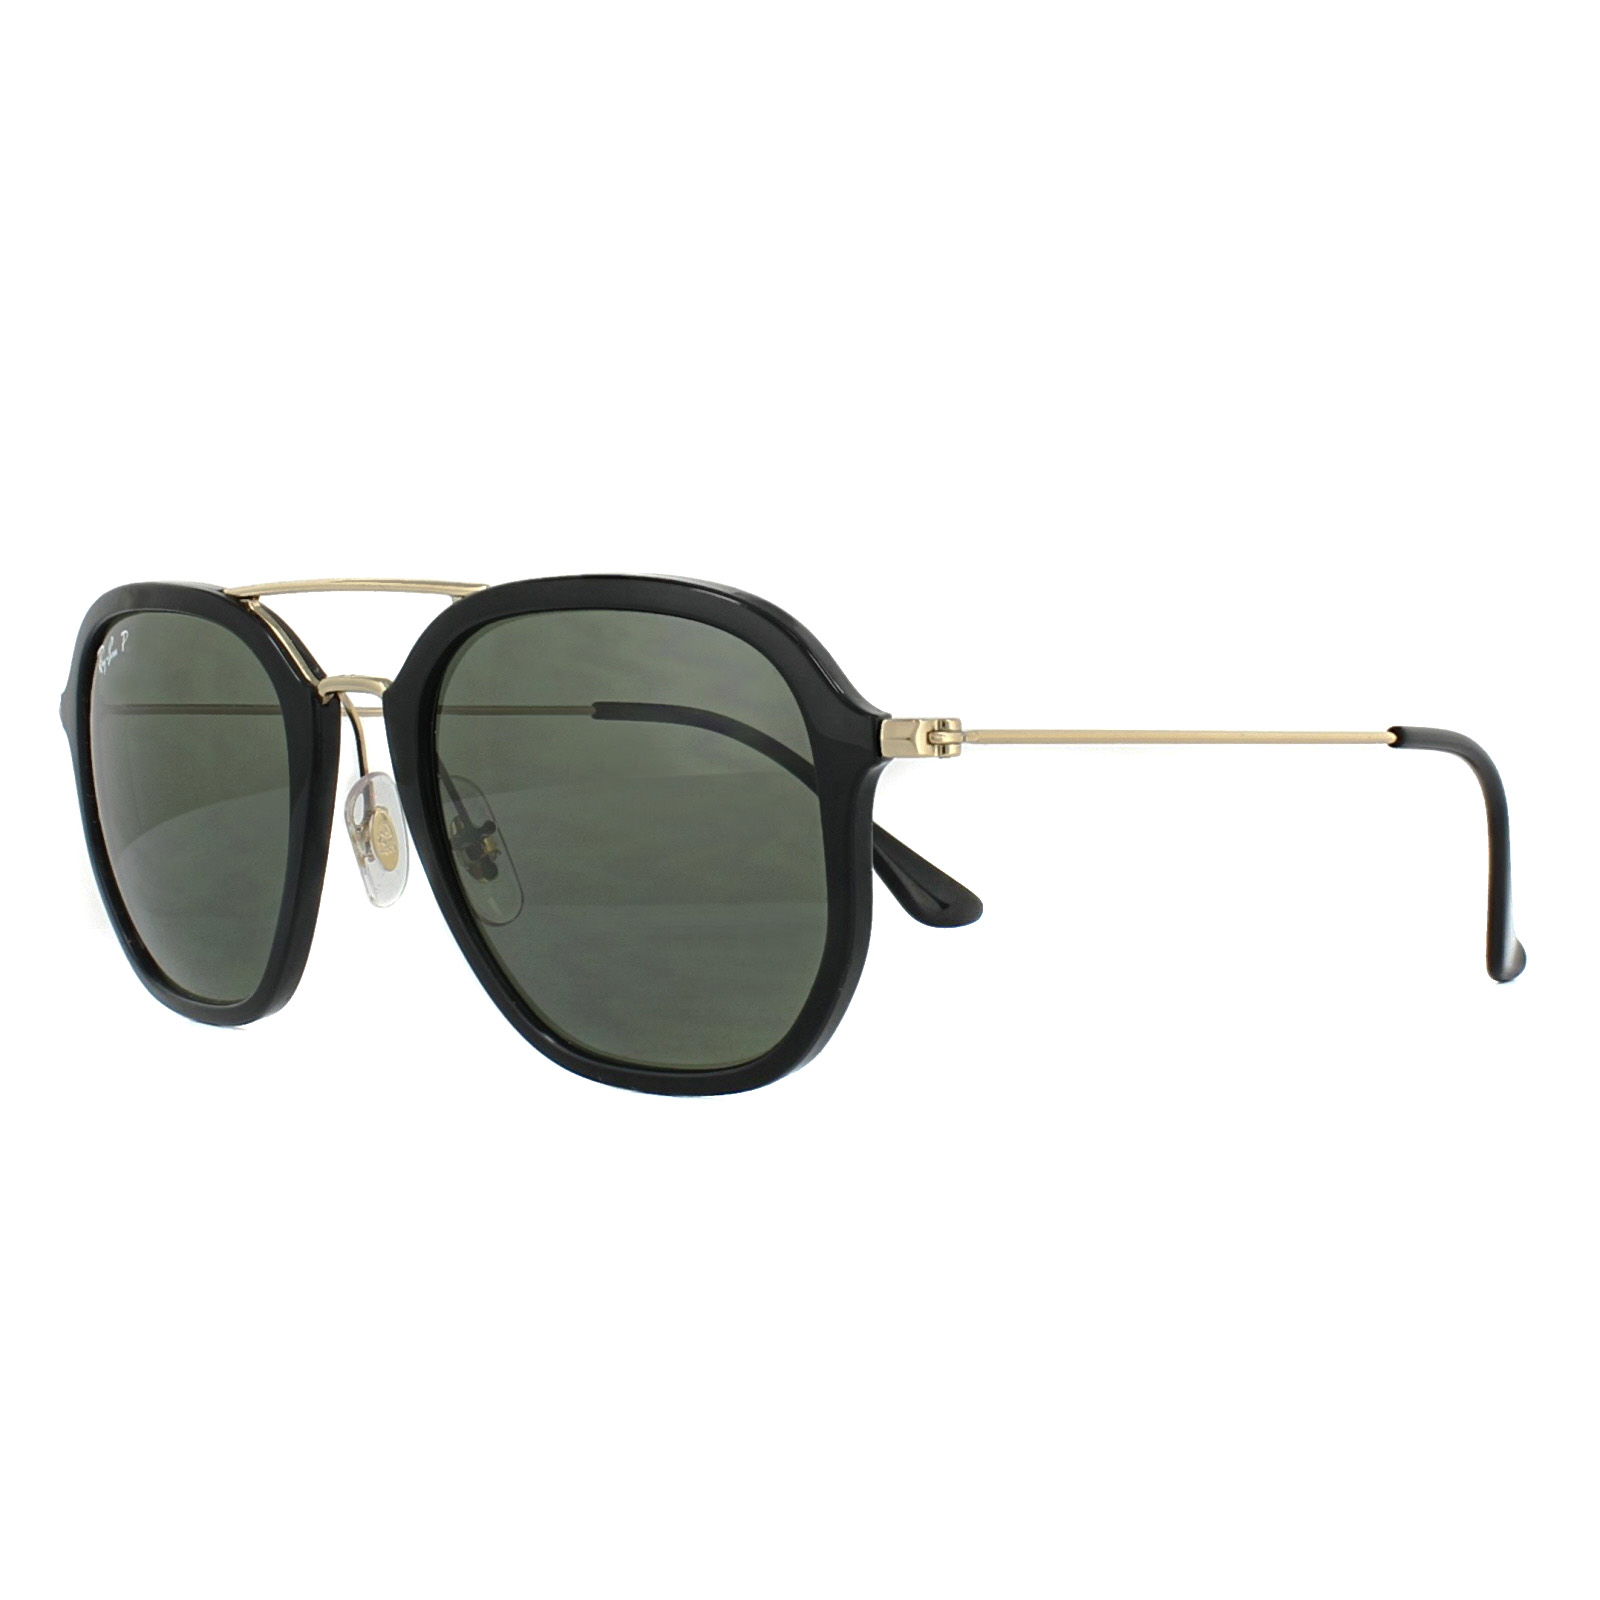 e3a40e0224 Details about Ray-Ban Sunglasses 4273 601 9A Black Gold Green Polarized